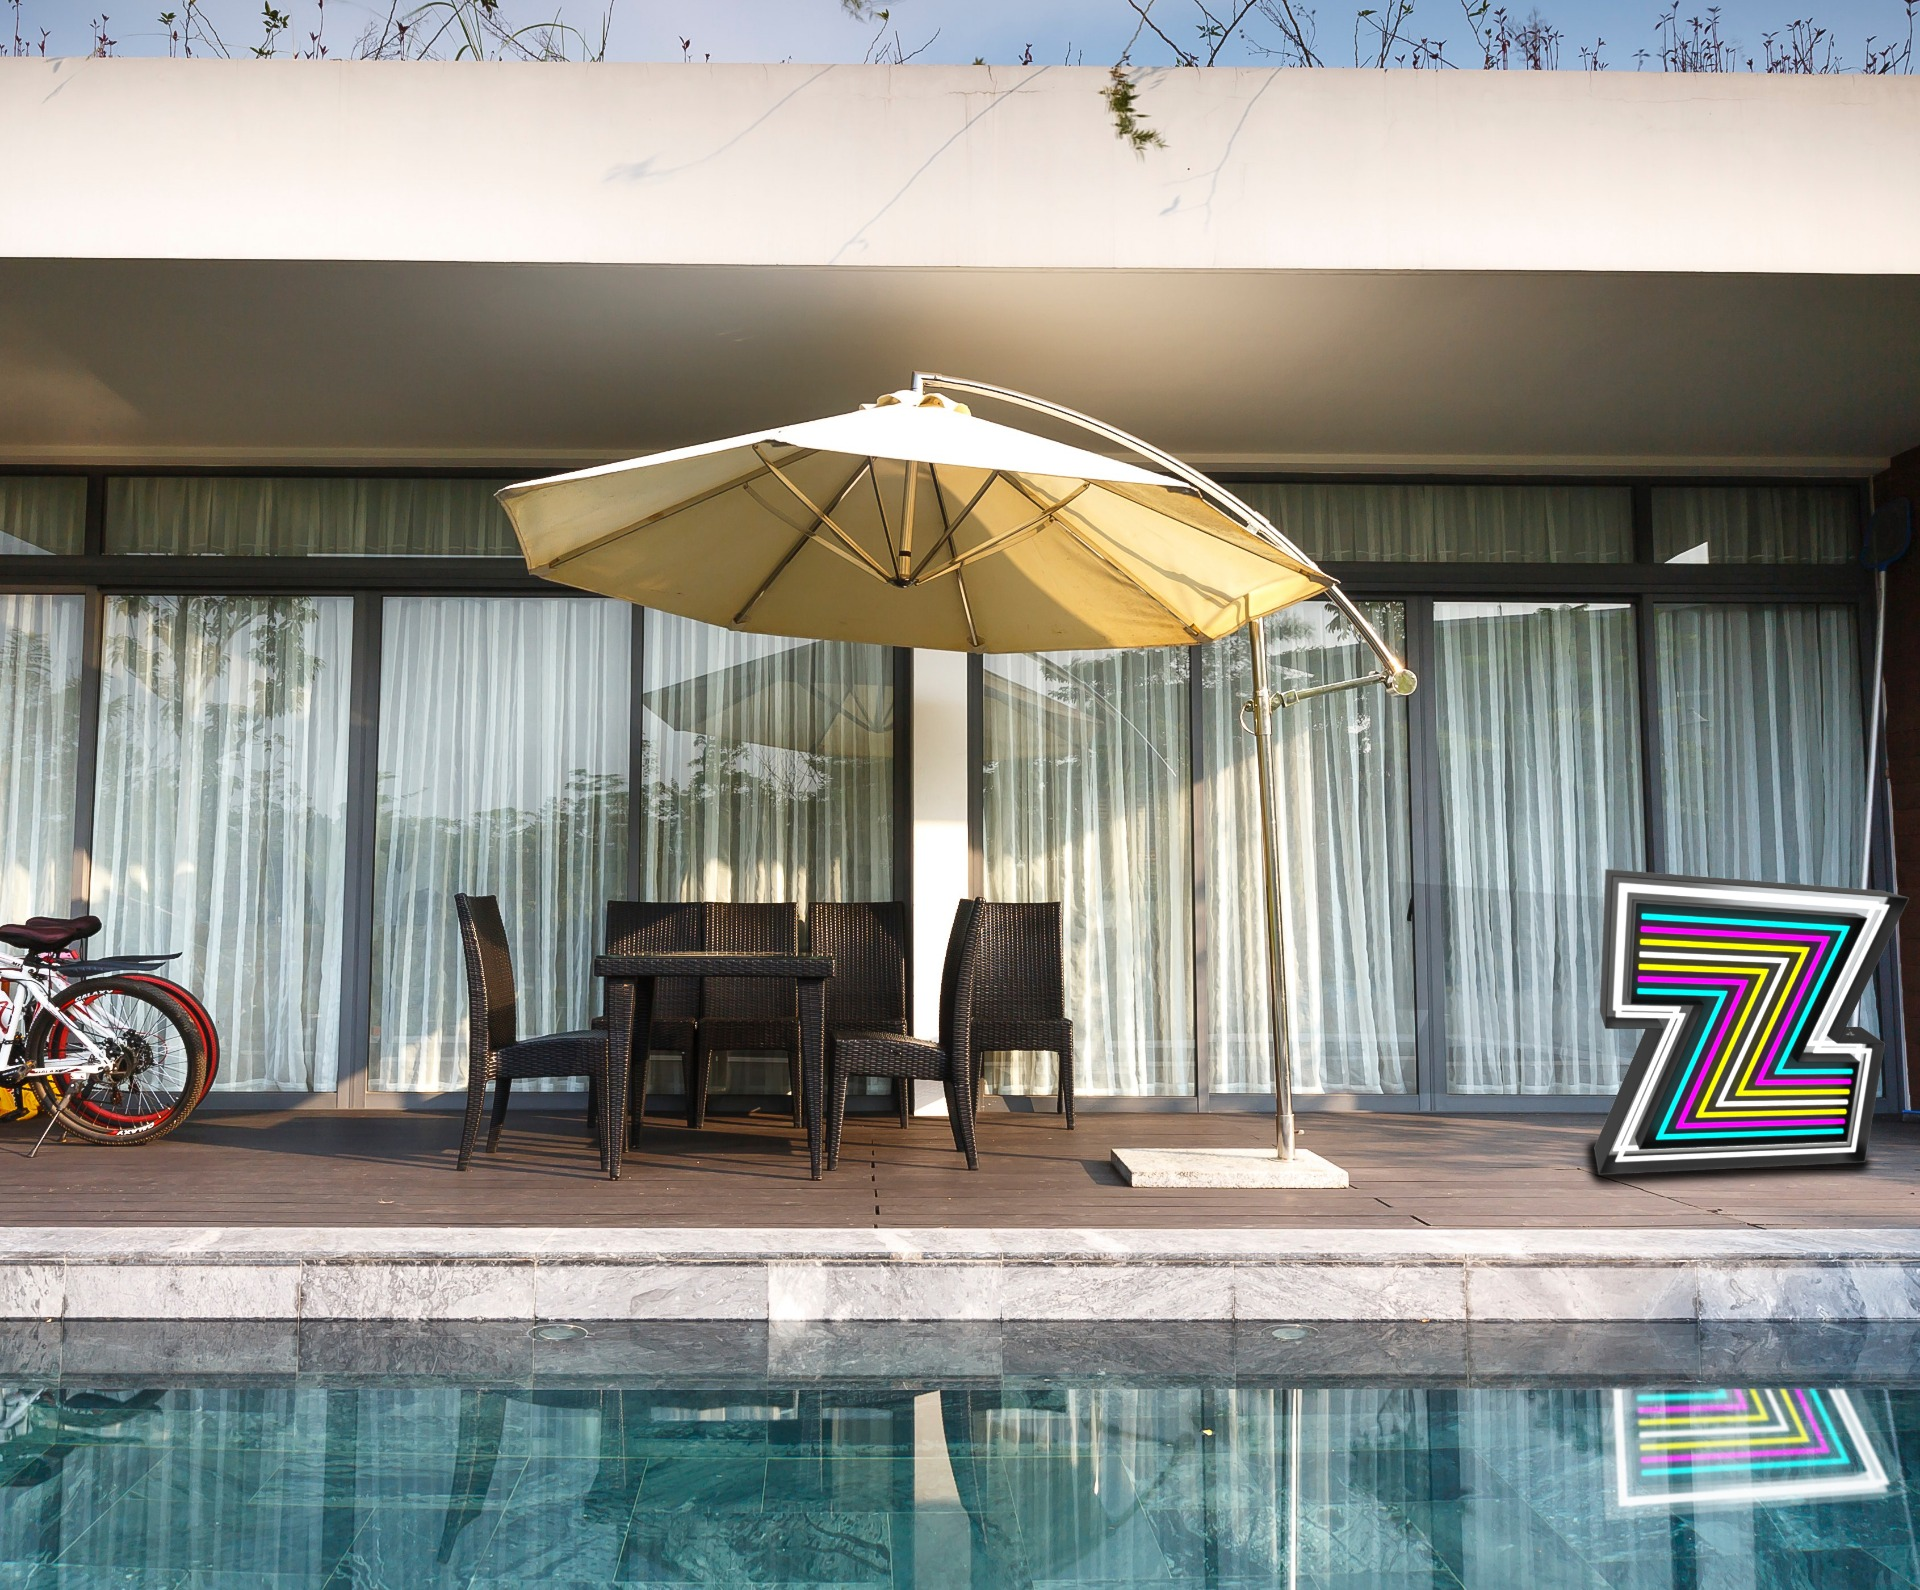 Make Your Outdoor Decor Stand Out With These Graphic Collection Pieces